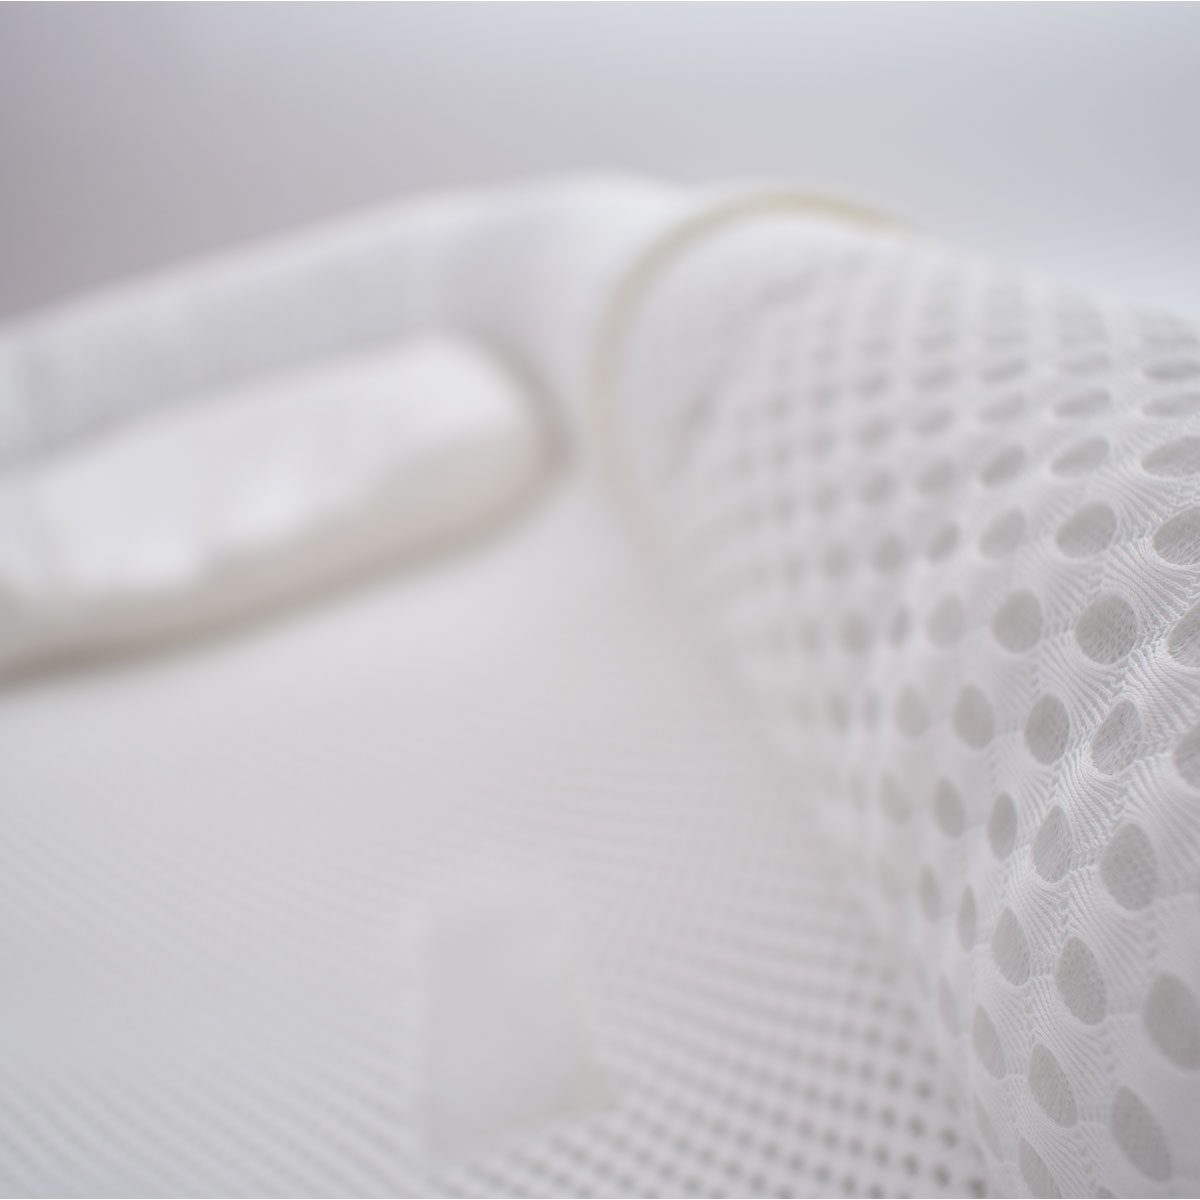 The Easy Dream is made with highly breathable fabrics